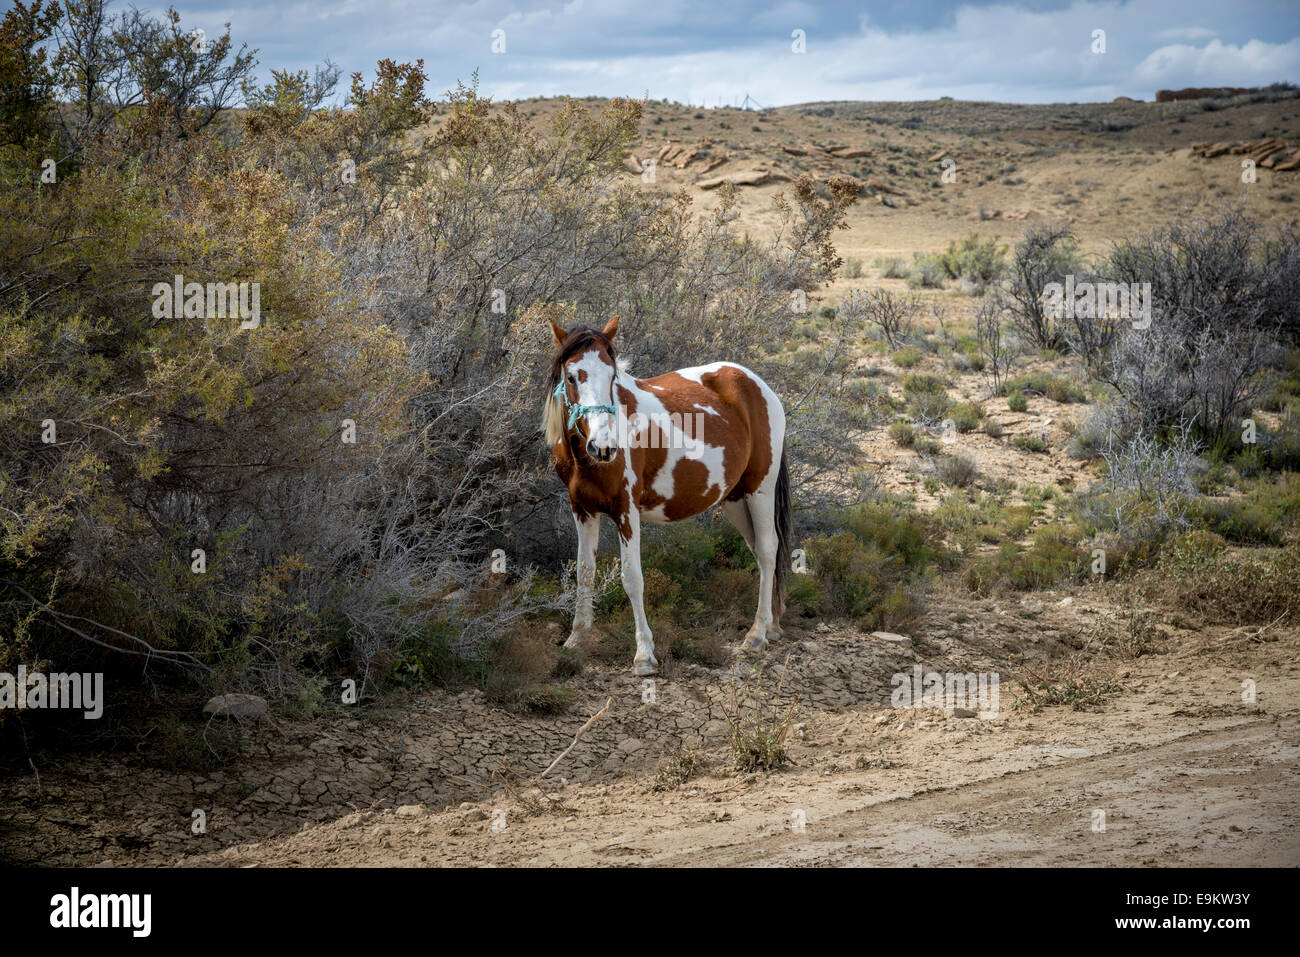 Pinto mare on Navajo Indian Reservation in western New Mexico, near Chaco Canyon, US - Stock Image